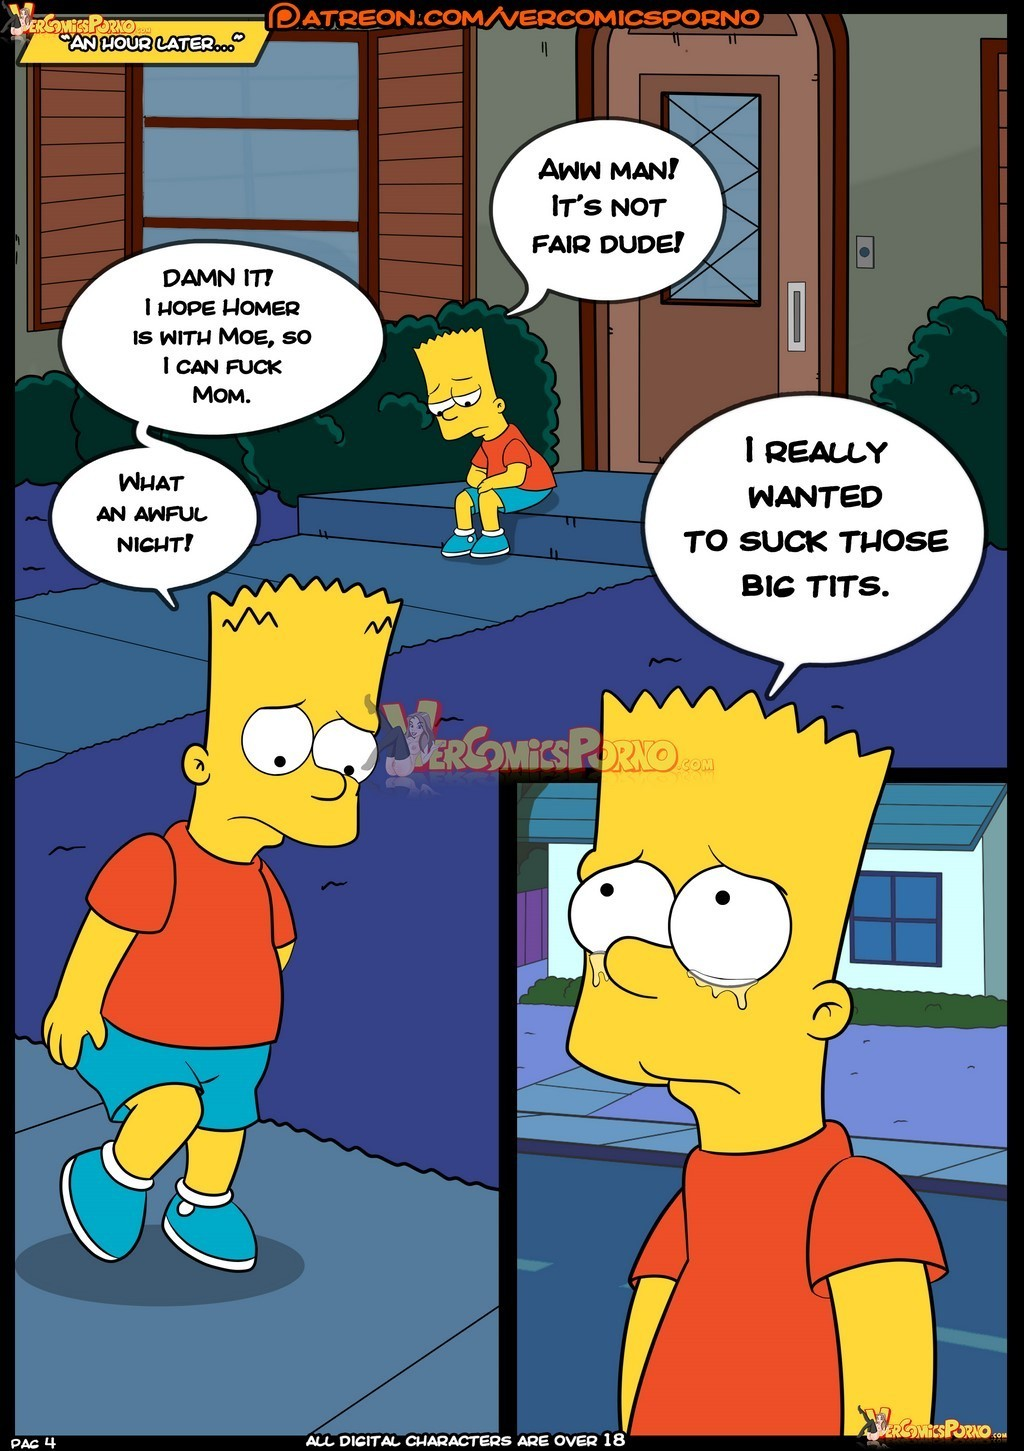 5 18 - The Simpsons. Part 8.